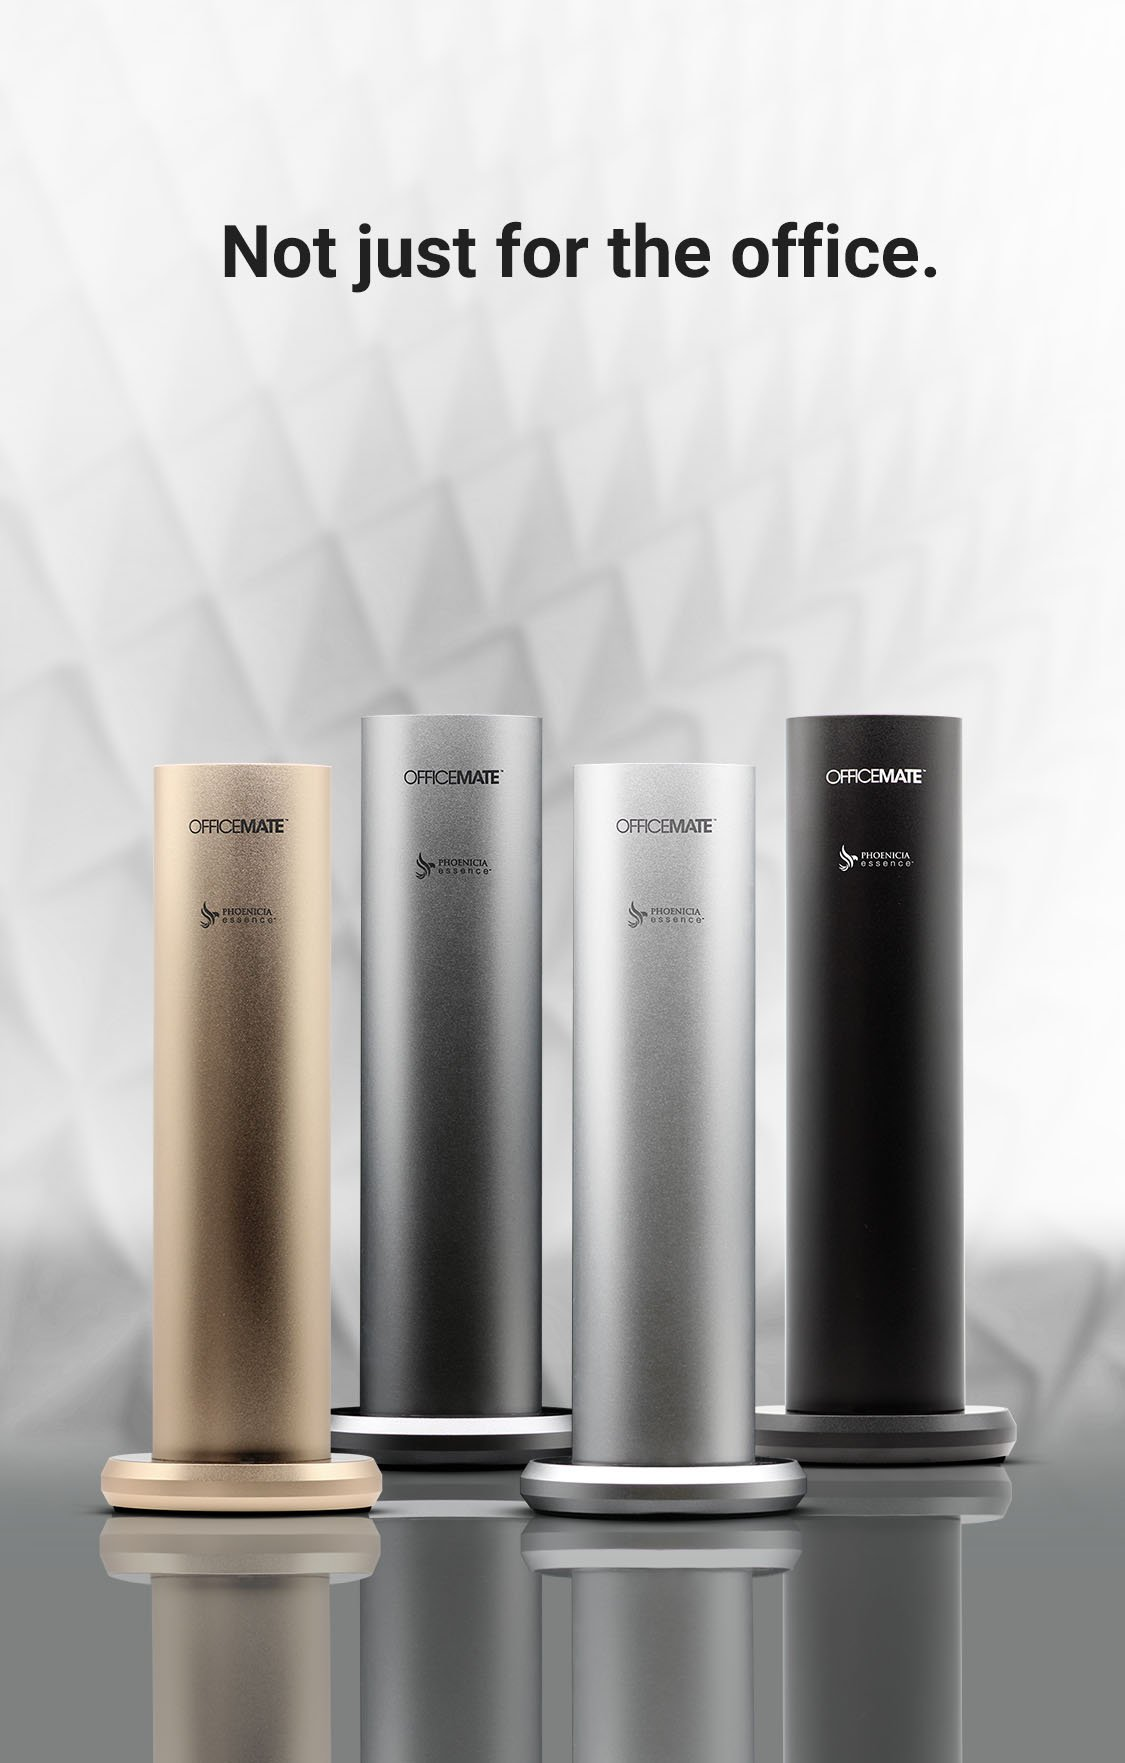 OfficeMate Fragrance Diffuser Variety Image